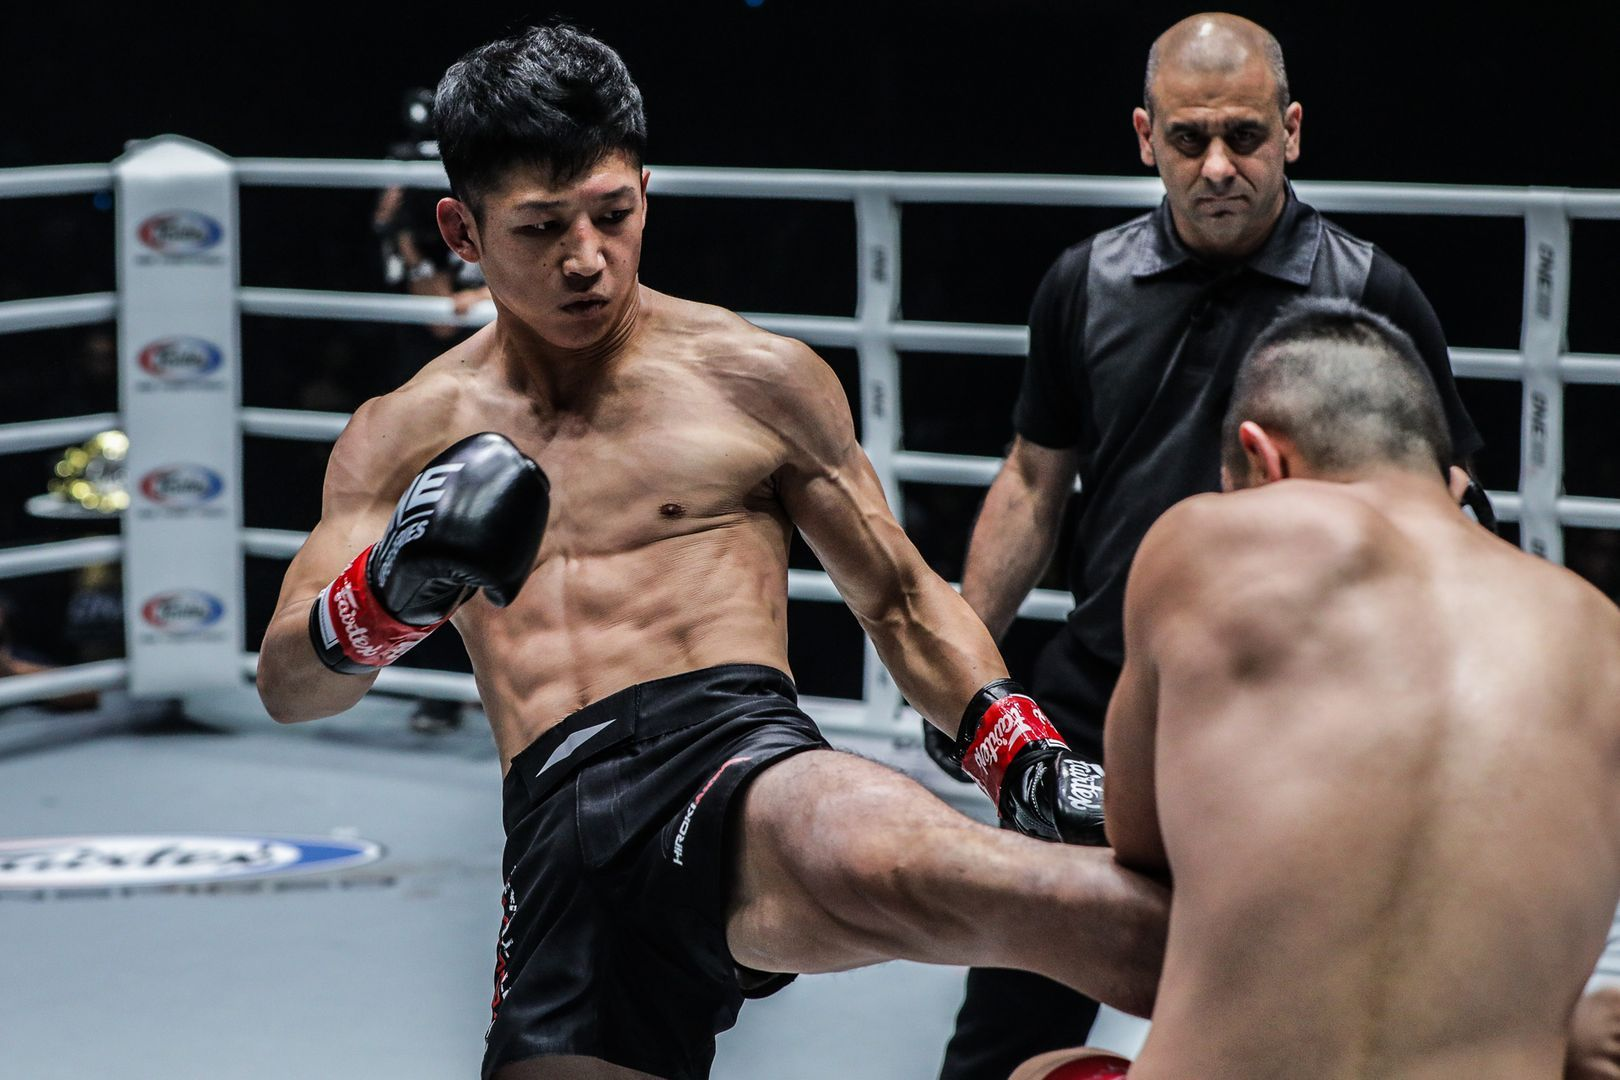 Japanese Muay Thai fighter Hiroki Akimoto throws a kick to Kenny Tse's gut